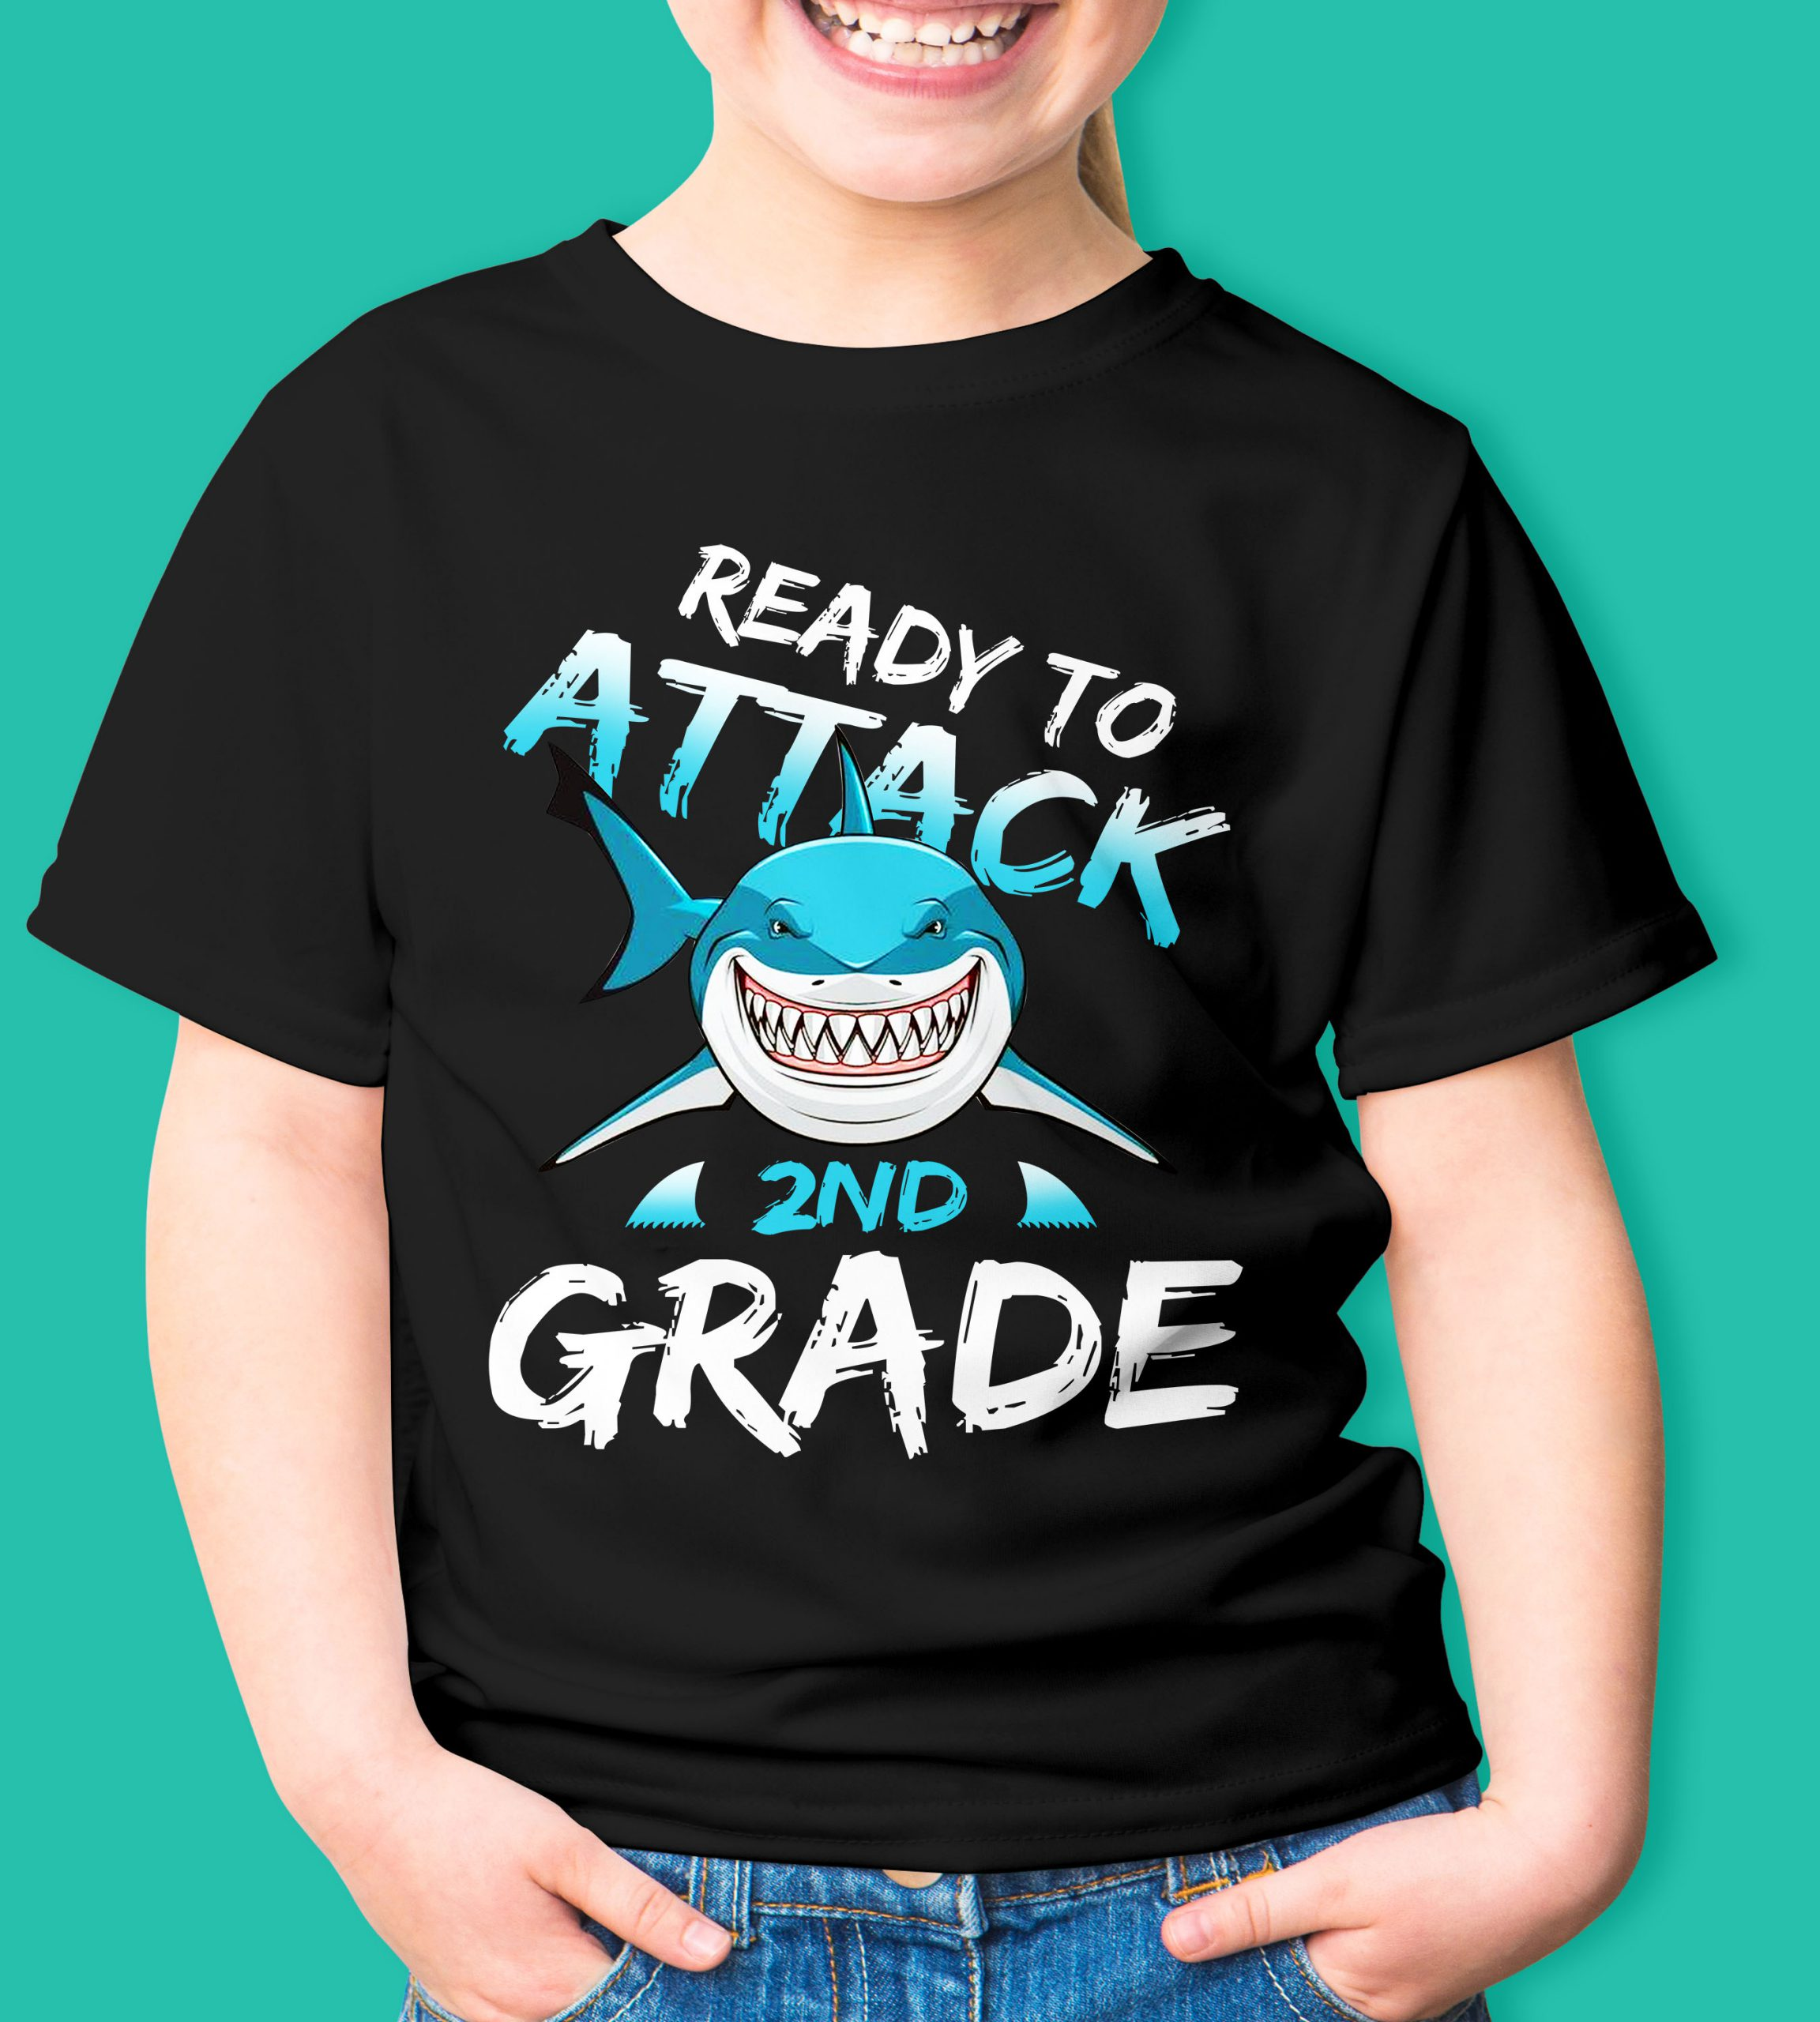 Ready to attack 2nd grade